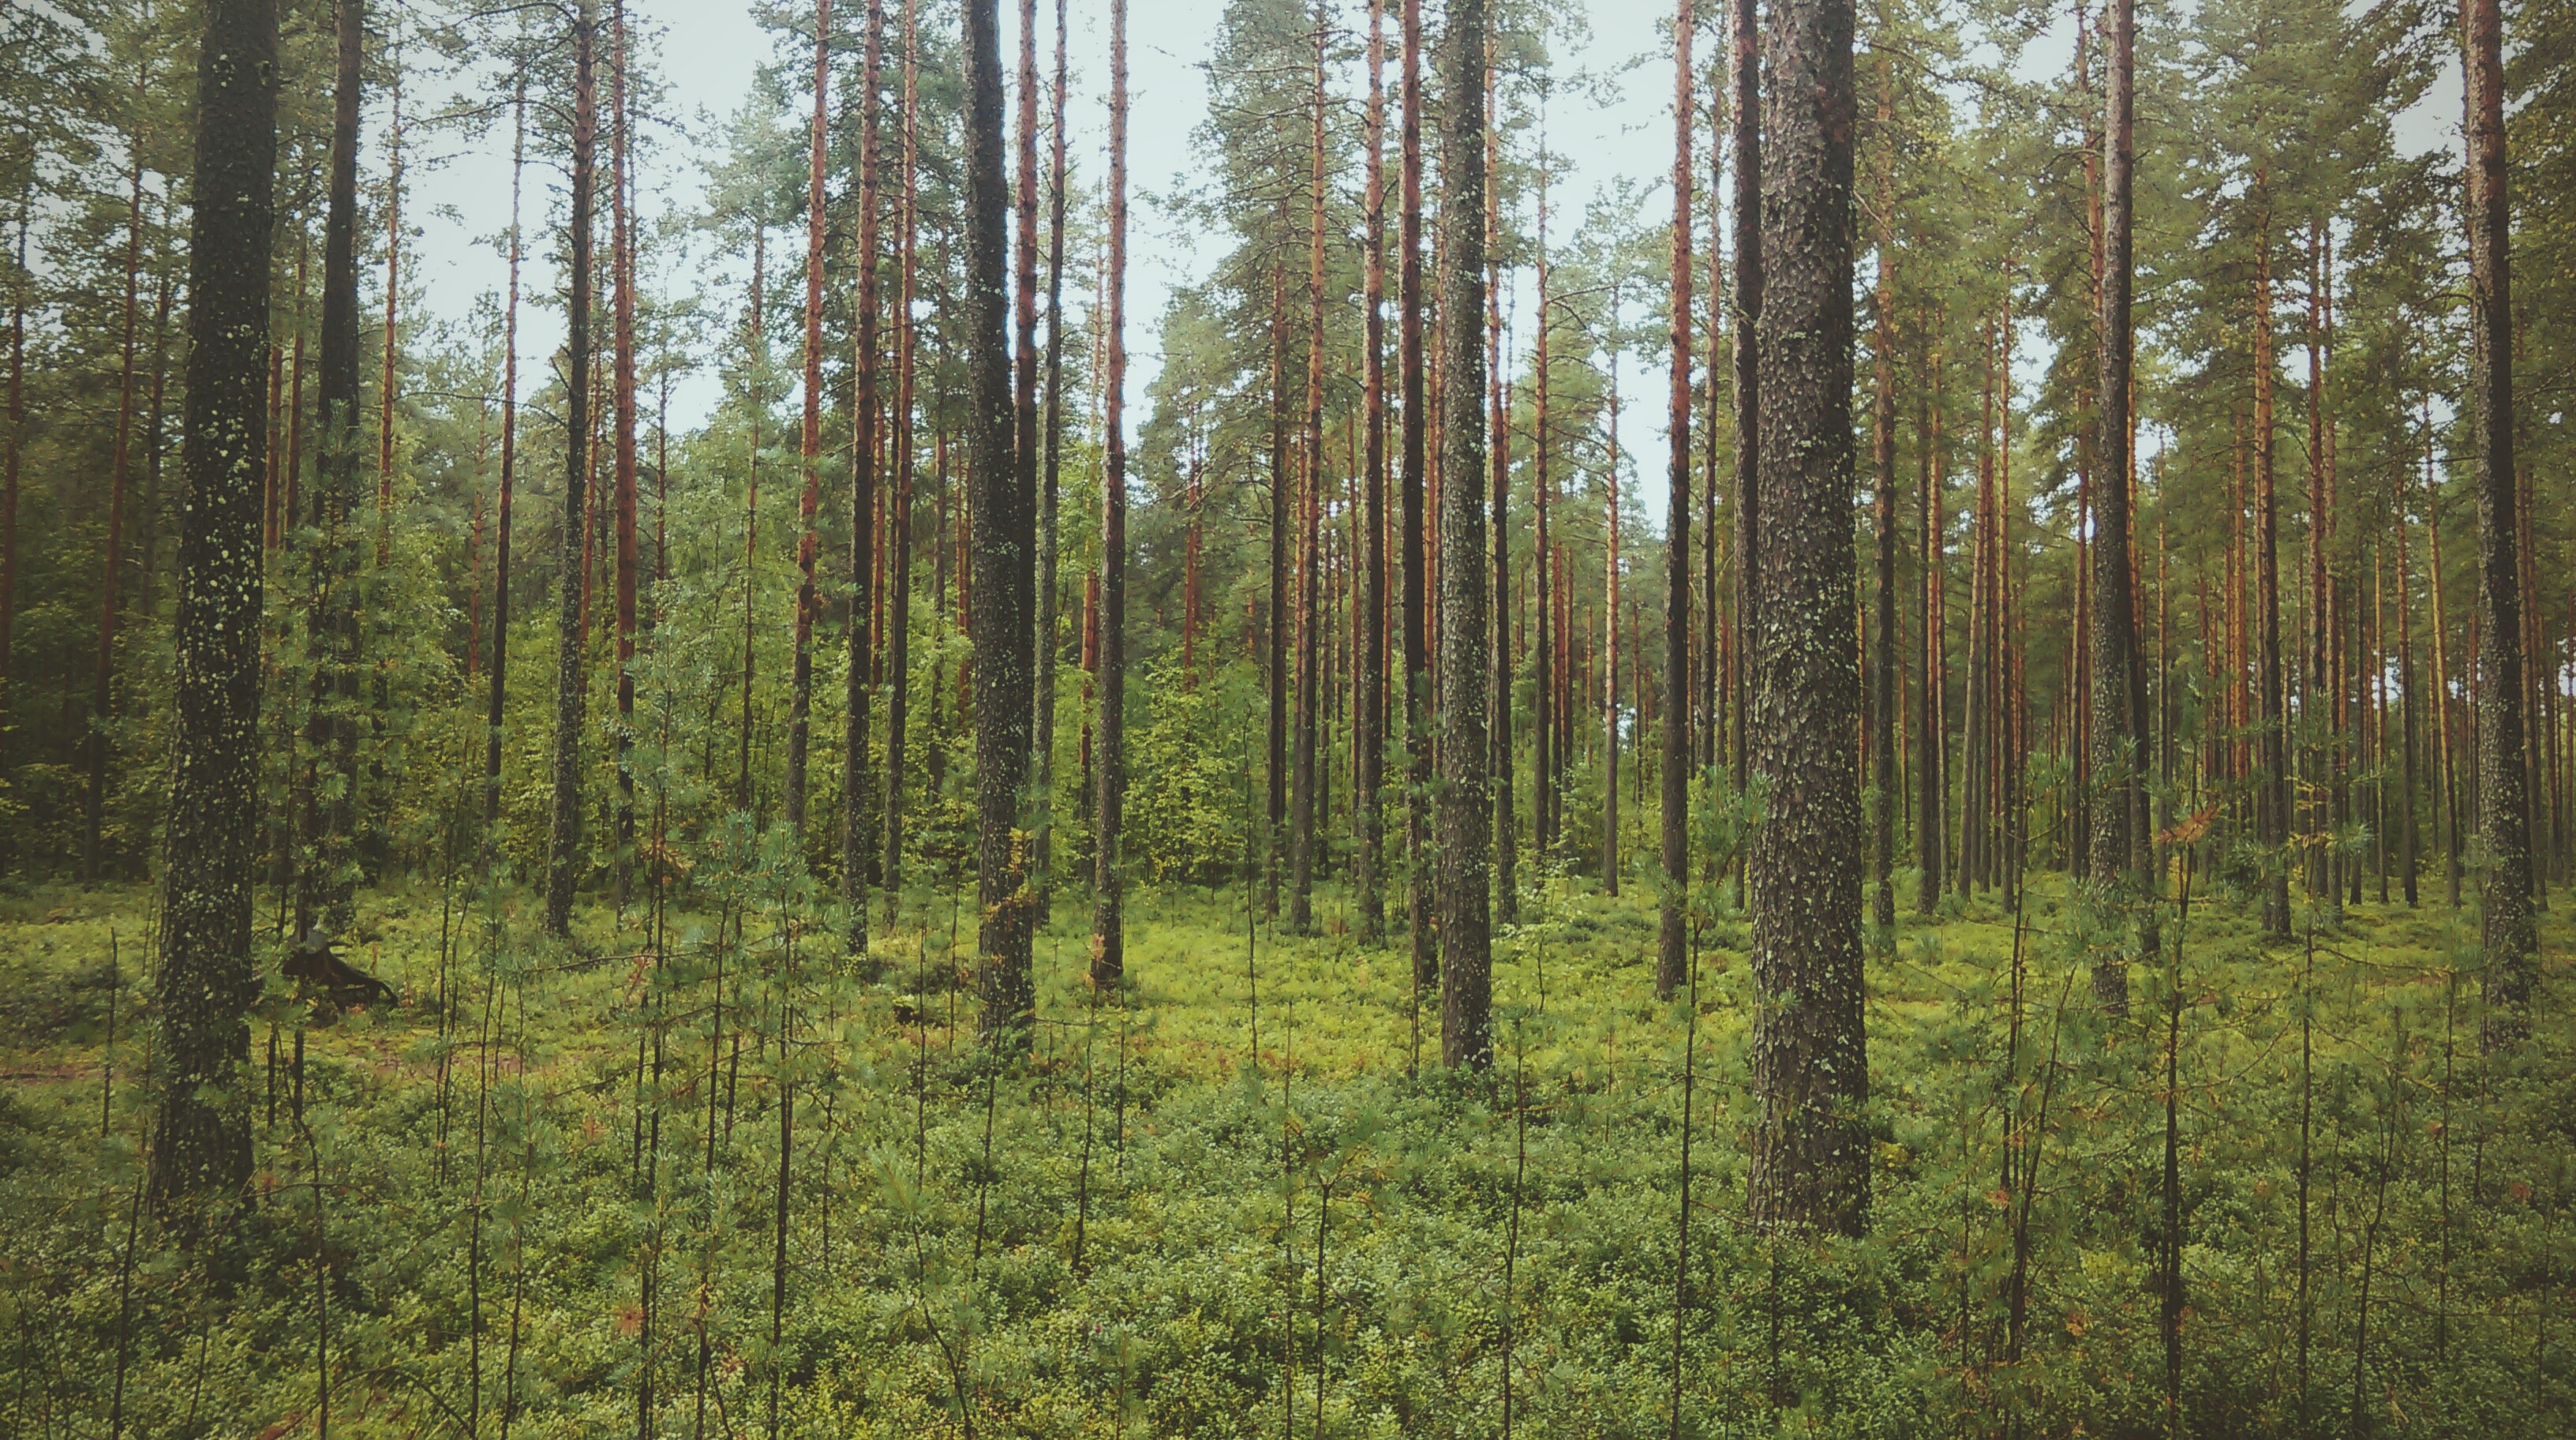 Thin tree trunks and saplings in a coniferous forest